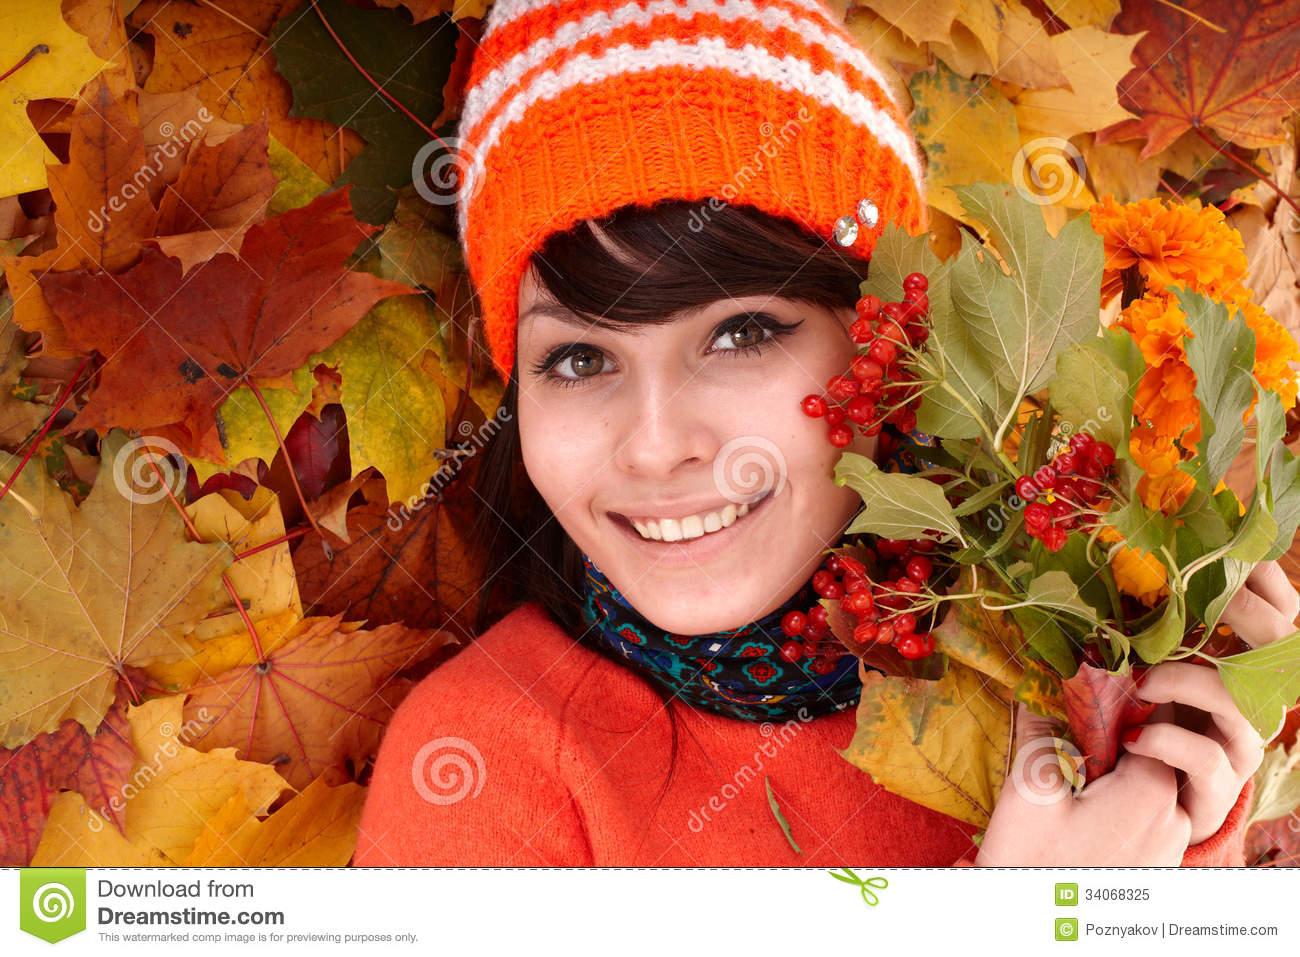 Girl in autumn orange leaves.